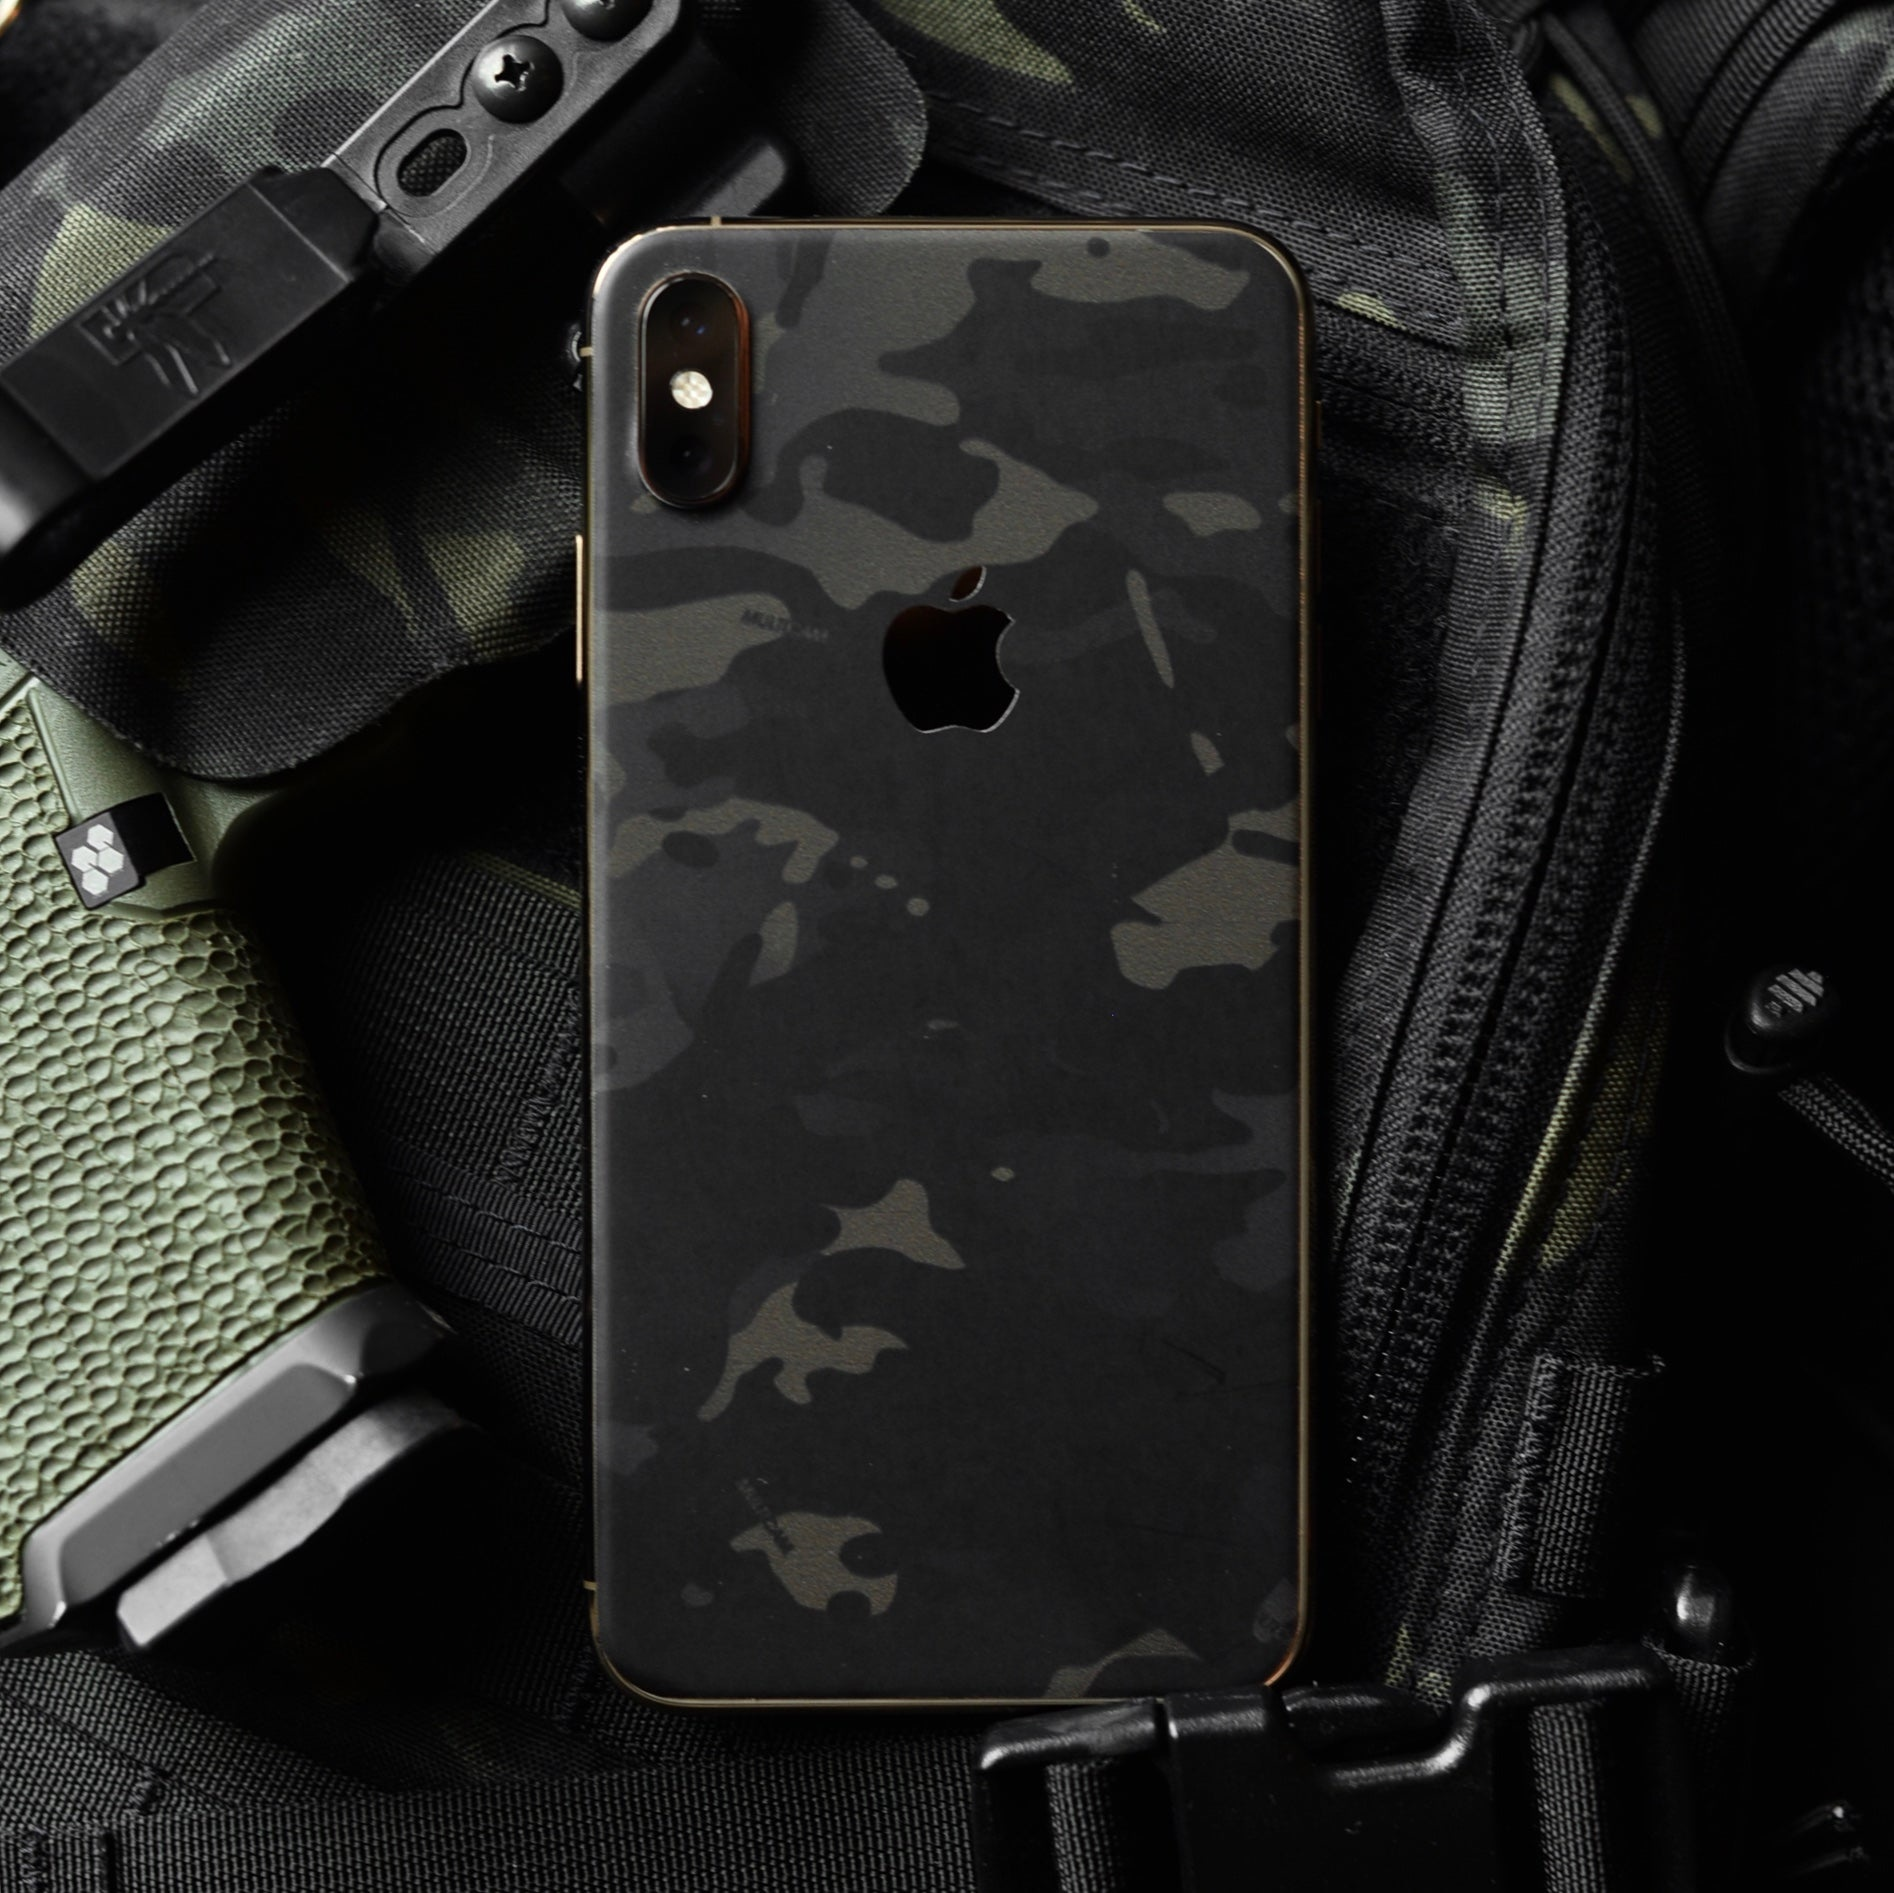 TAM TAM 3M Official Multicam Apple IPhone Skins